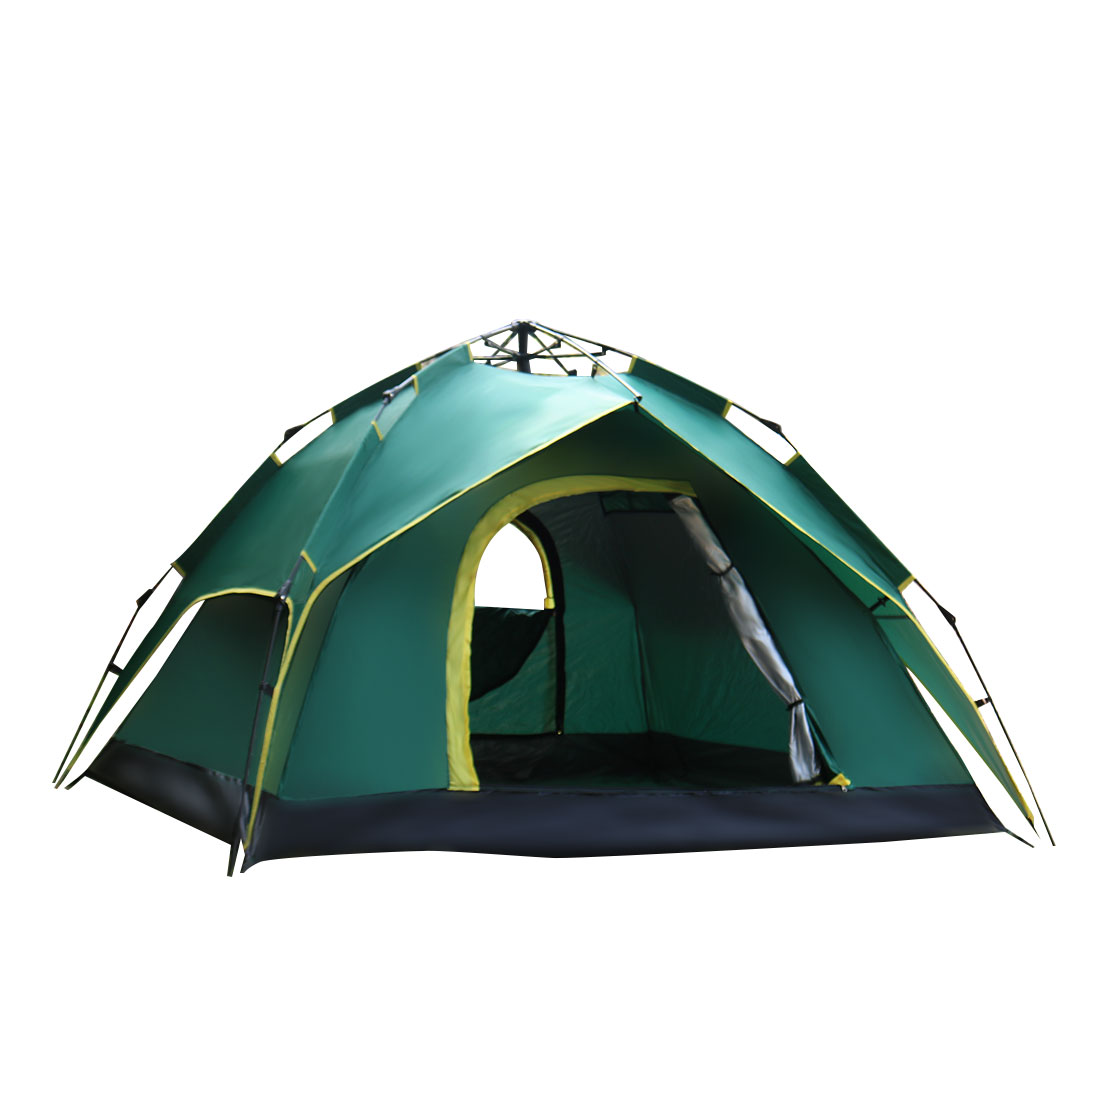 Hiking Backpacking Double Layer Water Resistant Sun Shelter Foldable Instant Camping Tent 3-5 Person Army Green